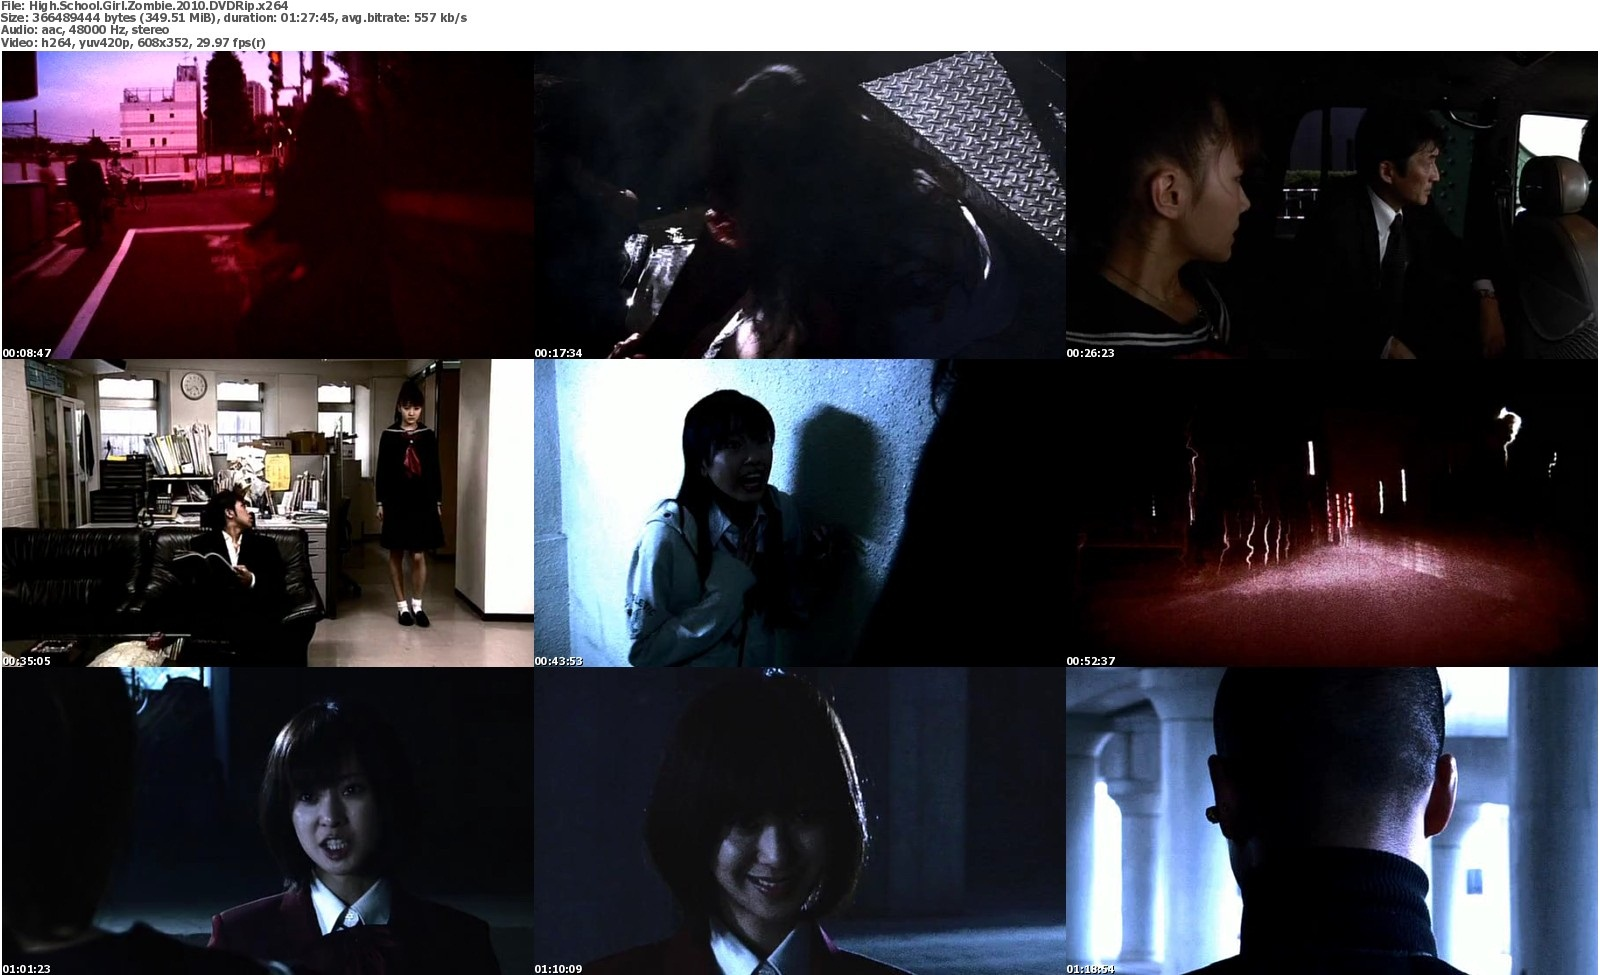 High.School.Girl.Zombie.2010.DVDRip.x264.hnmovies.com s